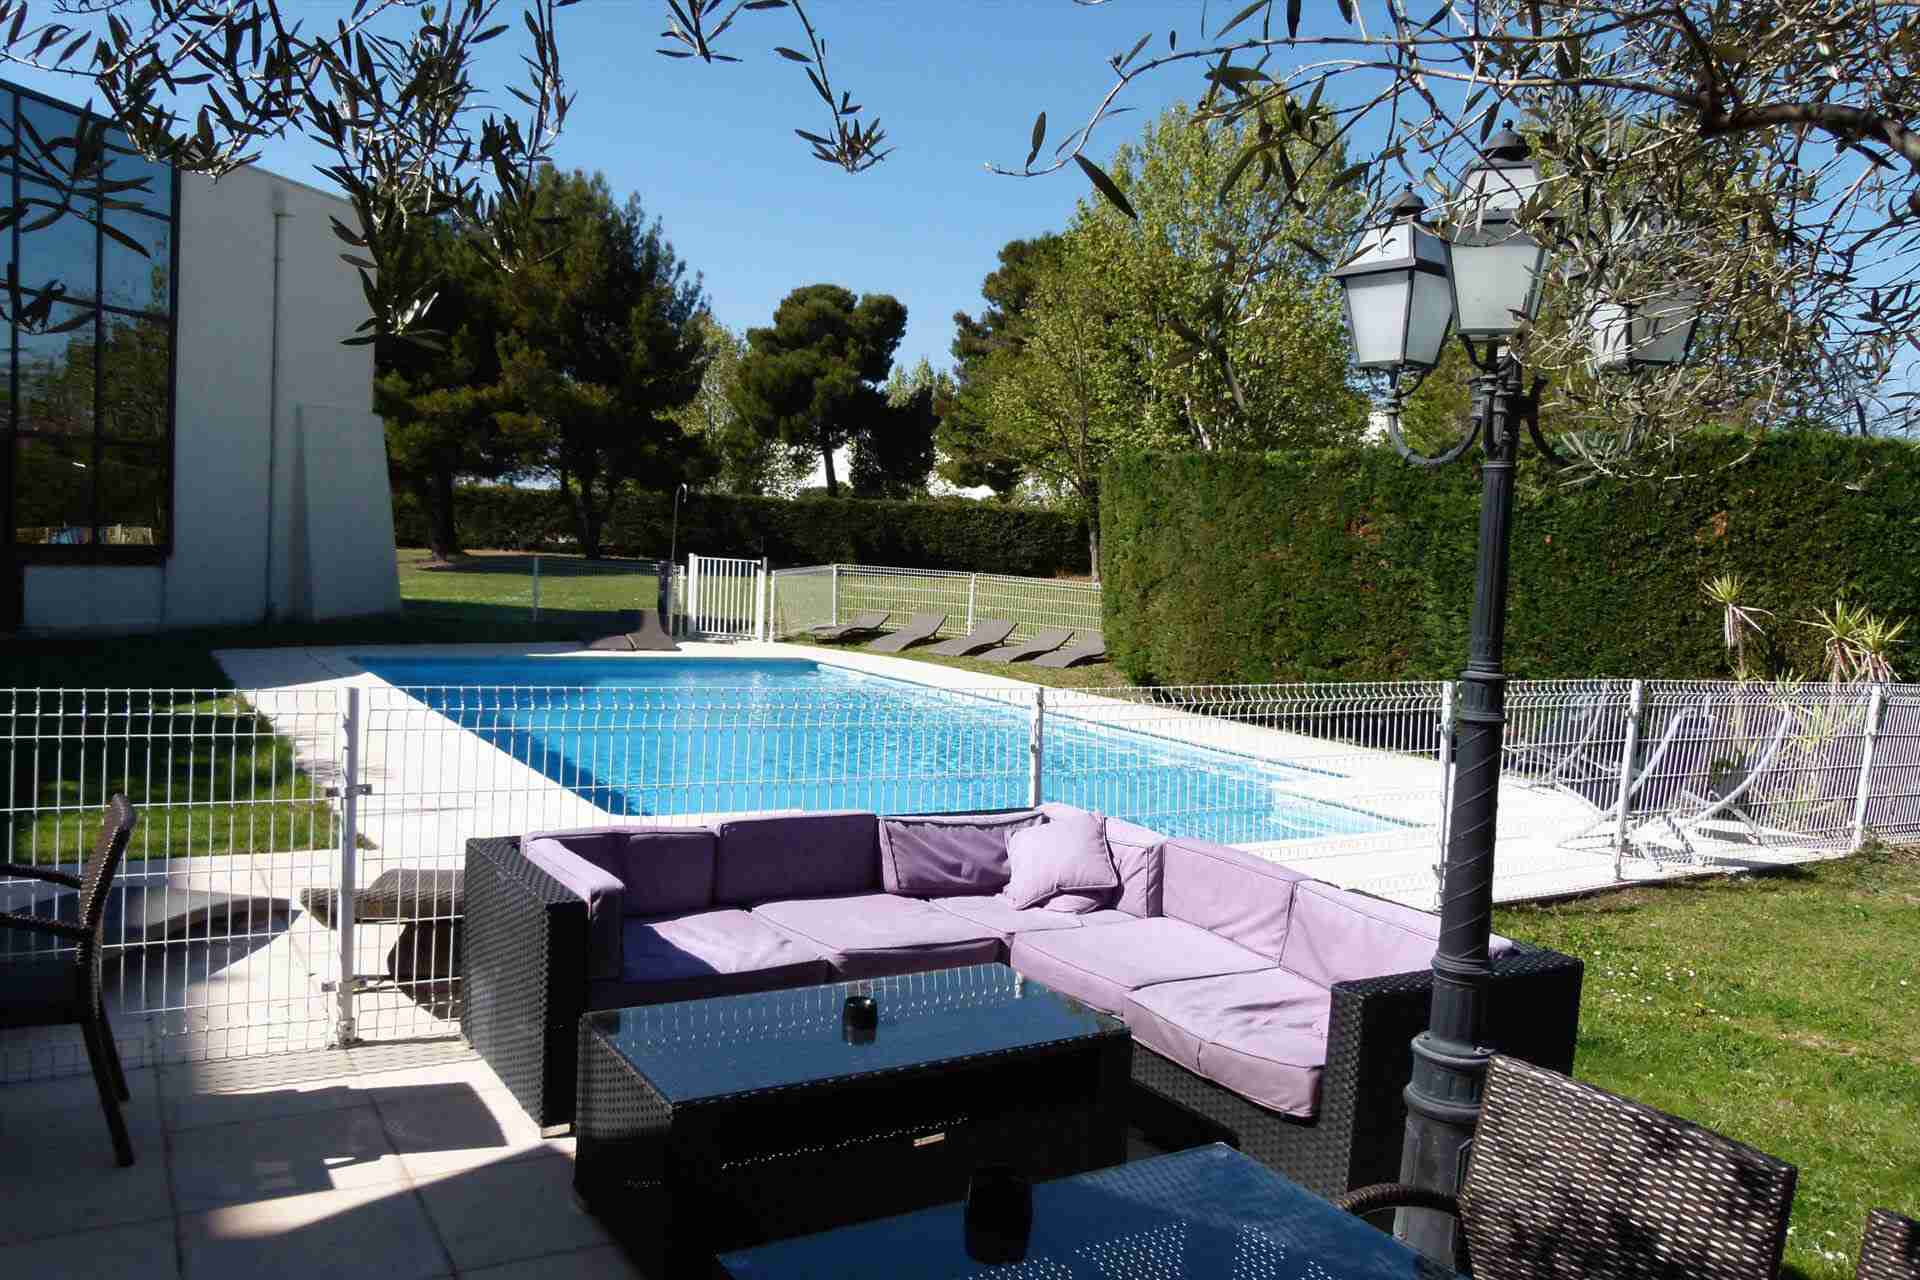 hotel-seminaire-languedoc-roussillon